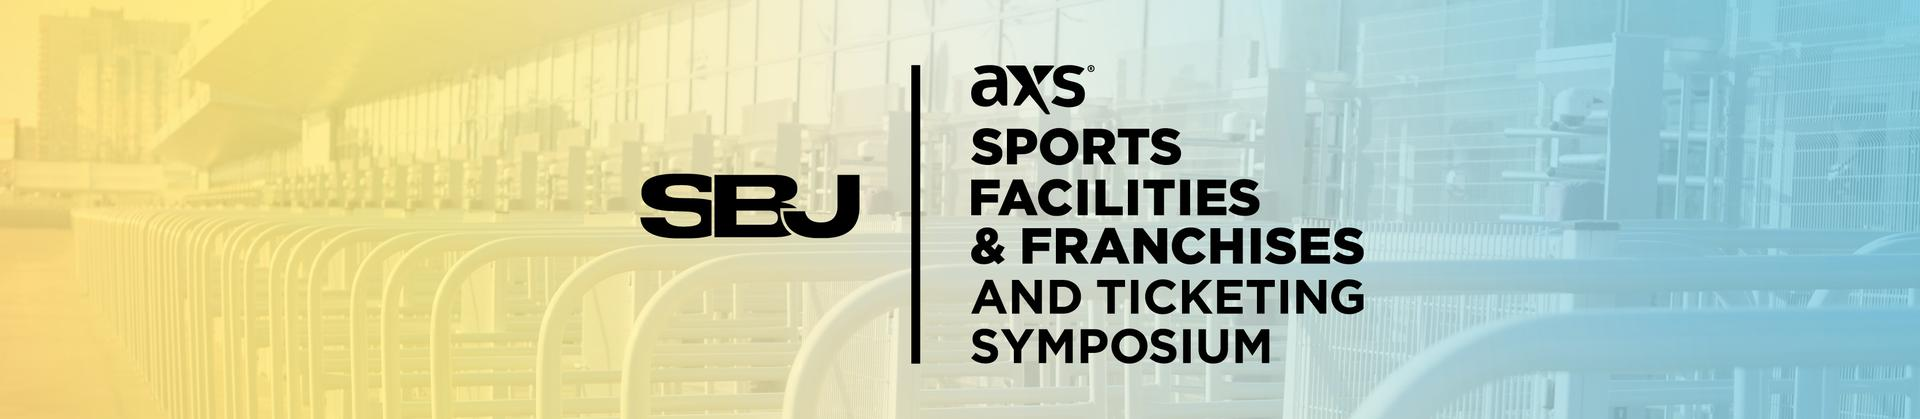 AXS Sports Facilities & Franchises and Ticketing Symposium